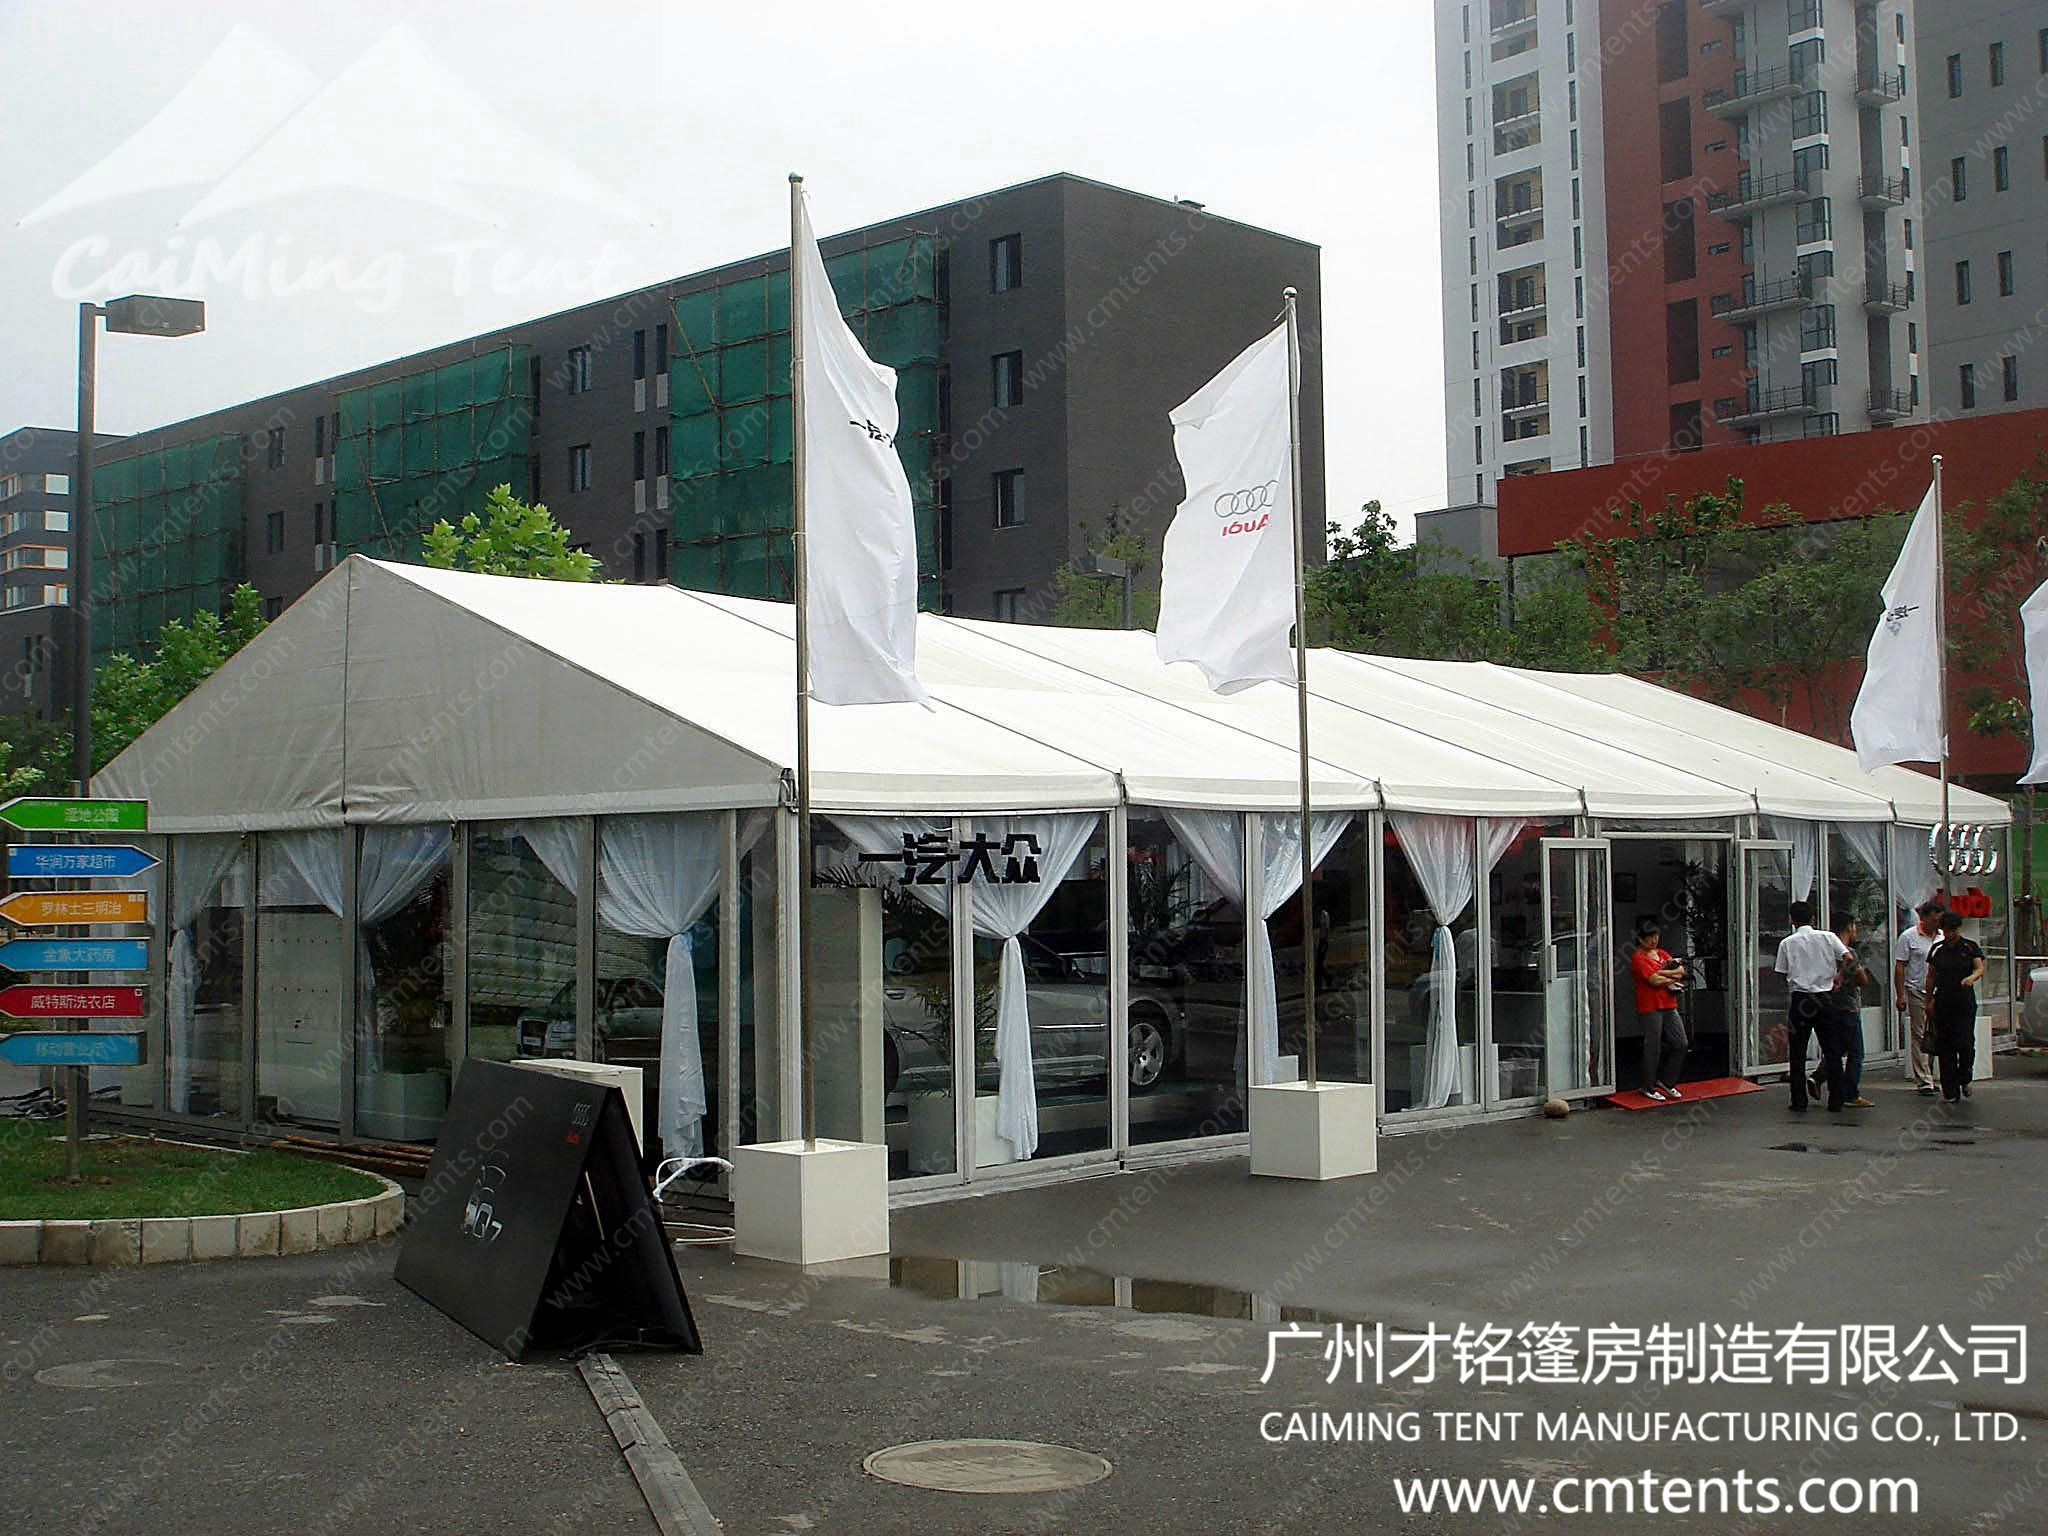 New Party Tent,New Party Tents,New Party Tents for sale,supply New Party Tent,offer New Party Tent,wholesale New Party Tent,New Party Tent factory,where New Party Tent,how much New Party Tent,buy New Party Tent,where to buy New Party Tent,blue New Party Tent,green New Party Tent,large New Party Tent,small New Party Tent,white New Party Tent,orange New Party Tent,how to buy New Party Tent,how to setup New Party Tent,how to install New Party Tent,New Party Tent list,New Party Tent price list,New Party Tent product list,party tents for sale,party tent amazon,party tent 20x20,party tent costco,party tent rental,rent a party tent,buy party tent,diy party tent,new party tents for sale,new party tents,new jersey party tent rentals,new orleans party tent rentals,new york party tent rentals,new york party tent,party tents new brunswick,party tents new jersey,party tent new zealand,party tents new hampshire,new party tent for sale,party tent rental new hampshire,party tent rental new haven ct,party tent rentals in new jersey,party tent rentals new lenox il,party tent rentals in new orleans,party tent rentals in new york,rent a party tent in new york,party tents for sale new jersey,party tents for rent new jersey,party tents new york,party tents new orleans,party tents for sale new zealand,party tents for sale new york,new party tents for sale,new party tents,new jersey party tent rentals,new orleans party tent rentals,new york party tent rentals,new york party tent,party tents new brunswick,party tents new jersey,party tent new zealand,party tents new hampshire,new party tents,best party tent heavy duty,best party tent,new york party tent,the best party tents for the money,best party tent to buy,new party tents,best party tents to purchase,best party tents for rain,best party tents for sale,best party tents,new party trend,new party entertainment ideas,a1 party & tent rentals inc. new york,ace party & tent rentals new york,all occasions party & tent rental new york,jw tent & party rentals new baltimore mi,new jersey party tent rentals,new orleans party tent rentals,new party tent for sale,new party tent gamma,new party tent gazebo,new party tent kopen,new party tent verhuur,new party tents,new party tents for sale,new york party tent,new york party tent rentals,party tent new zealand,party tent rental new hampshire,party tent rental new haven ct,party tent rental new london ct,party tent rental new richmond wi,party tent rentals in new jersey,party tent rentals in new orleans,party tent rentals in new york,party tent rentals in western new york,party tent rentals long island new york,party tent rentals new bern nc,party tent rentals new braunfels tx,party tent rentals new brunswick,party tent rentals new jersey,party tent rentals new lenox il,party tent rentals new mexico,party tent rentals new orleans,party tent rentals new york,party tent rentals northern new jersey,party tents for rent new jersey,party tents for sale new jersey,party tents for sale new york,party tents for sale new zealand,party tents new brunswick,party tents new hampshire,party tents new jersey,party tents new orleans,party tents new york,rent a party tent in new york,tent and party rentals new jersey